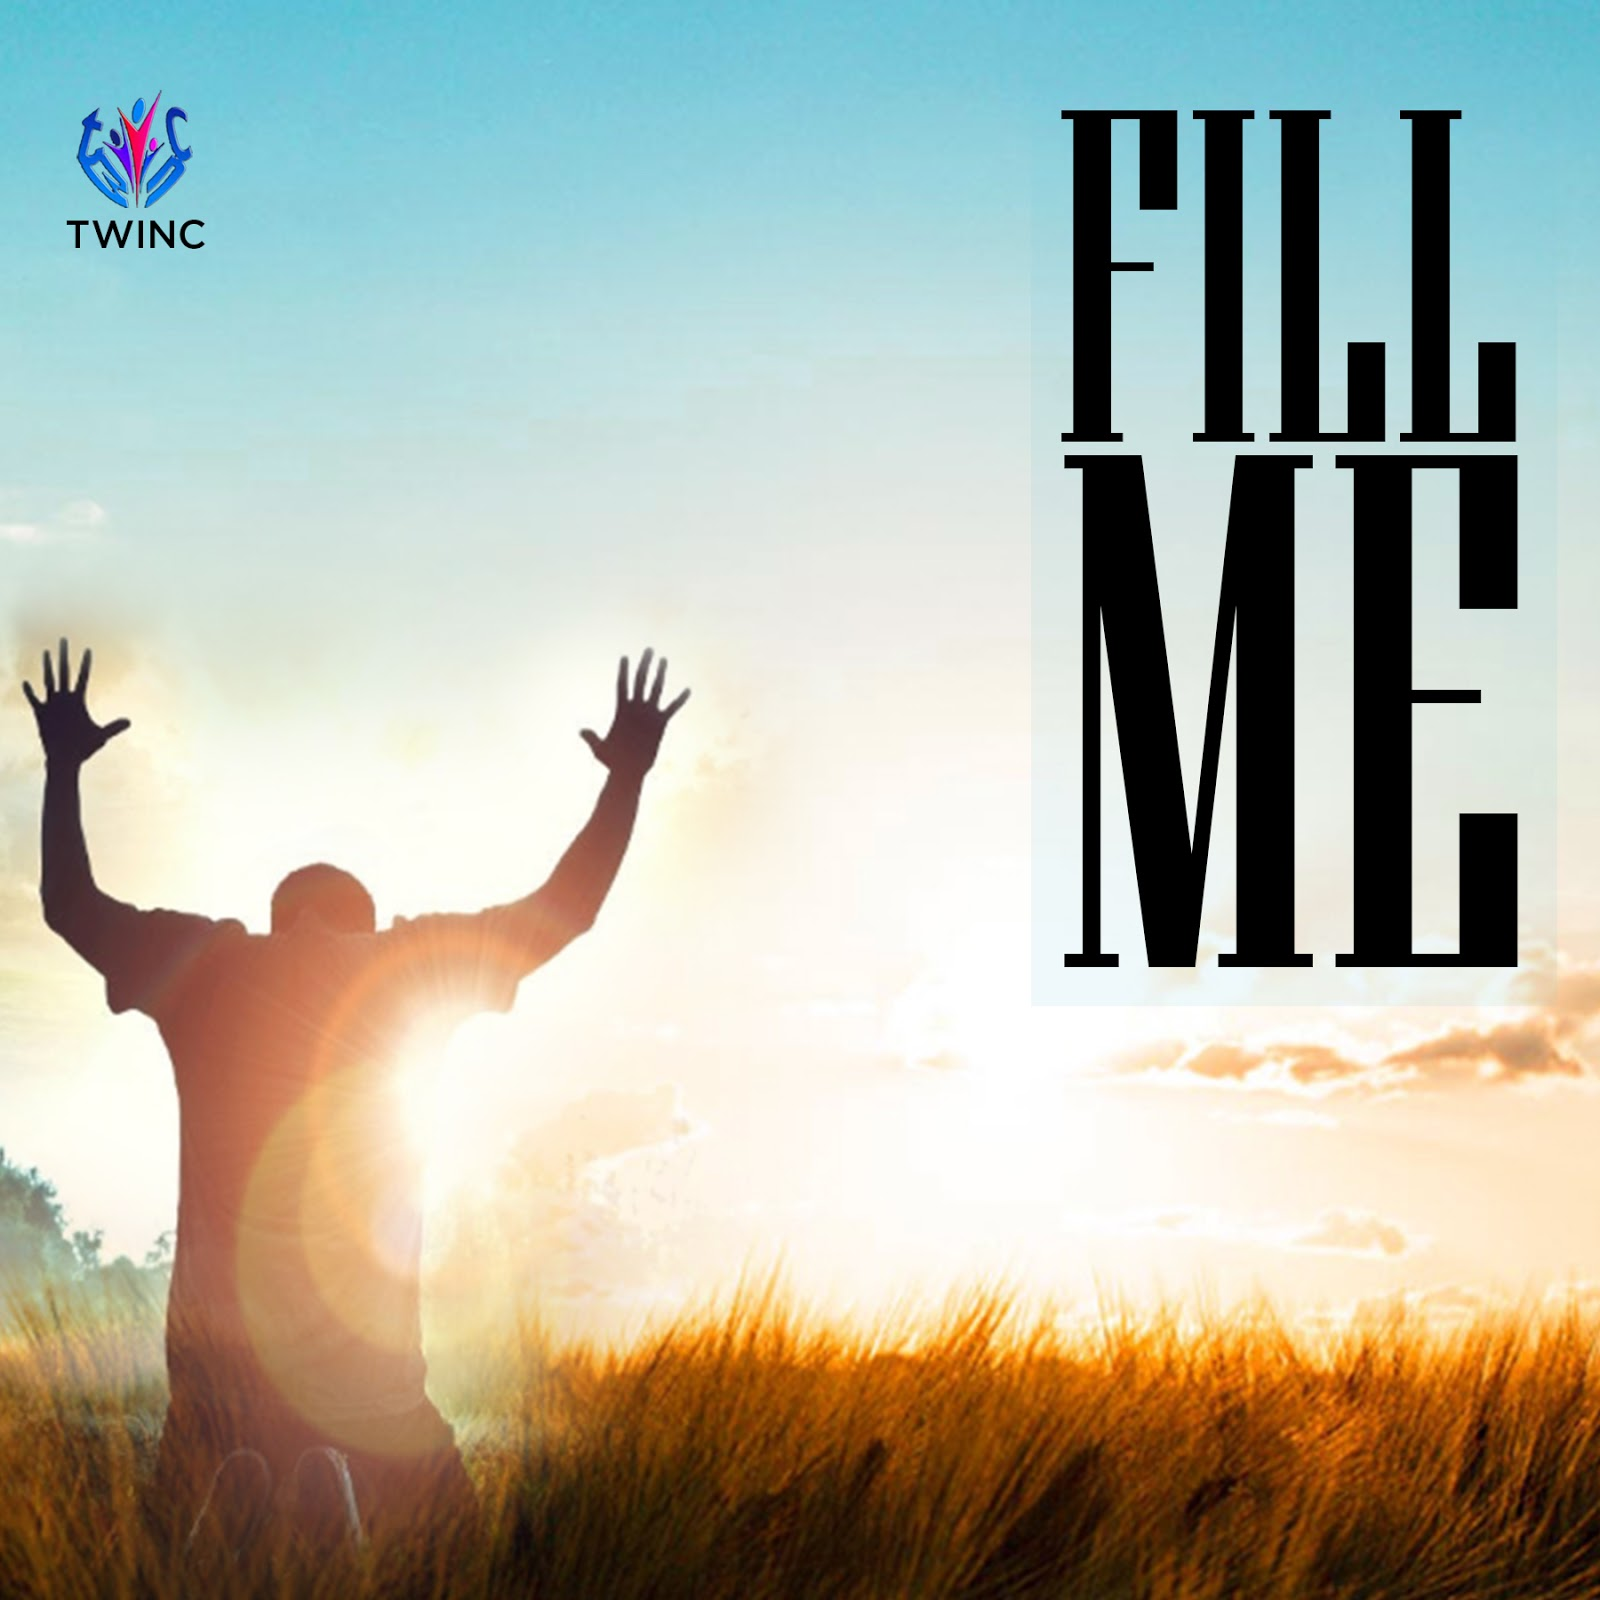 Fill me up by tasha cobbs mp3 download – christian music.